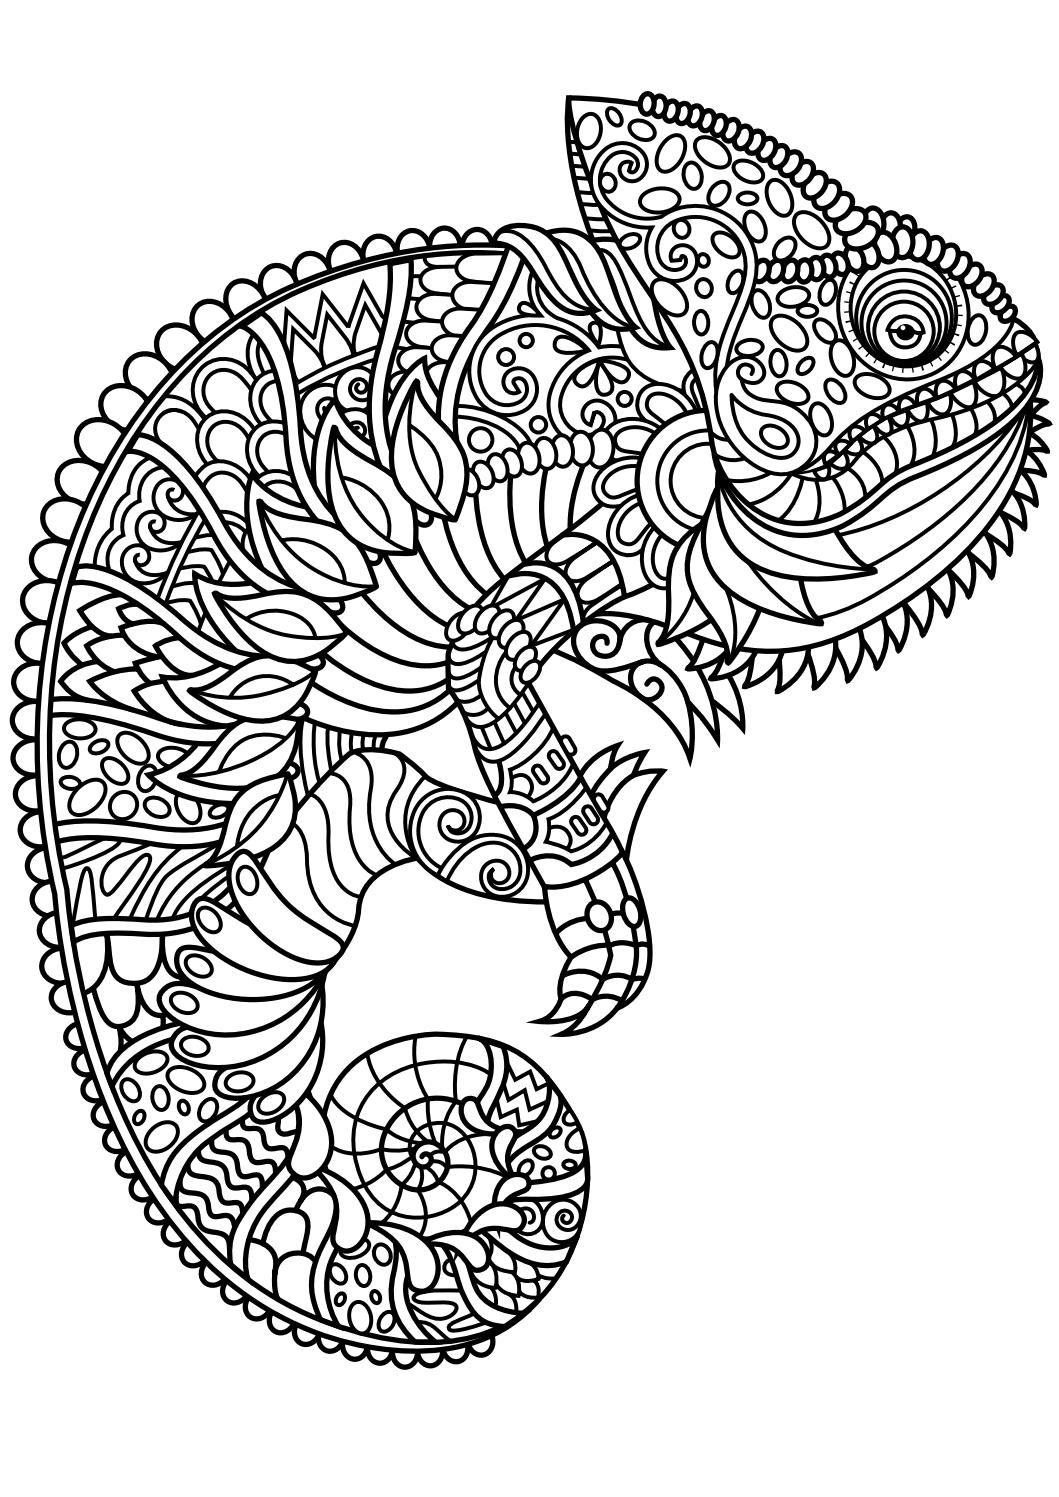 Animal coloring pages pdf Coloring Animals Dog